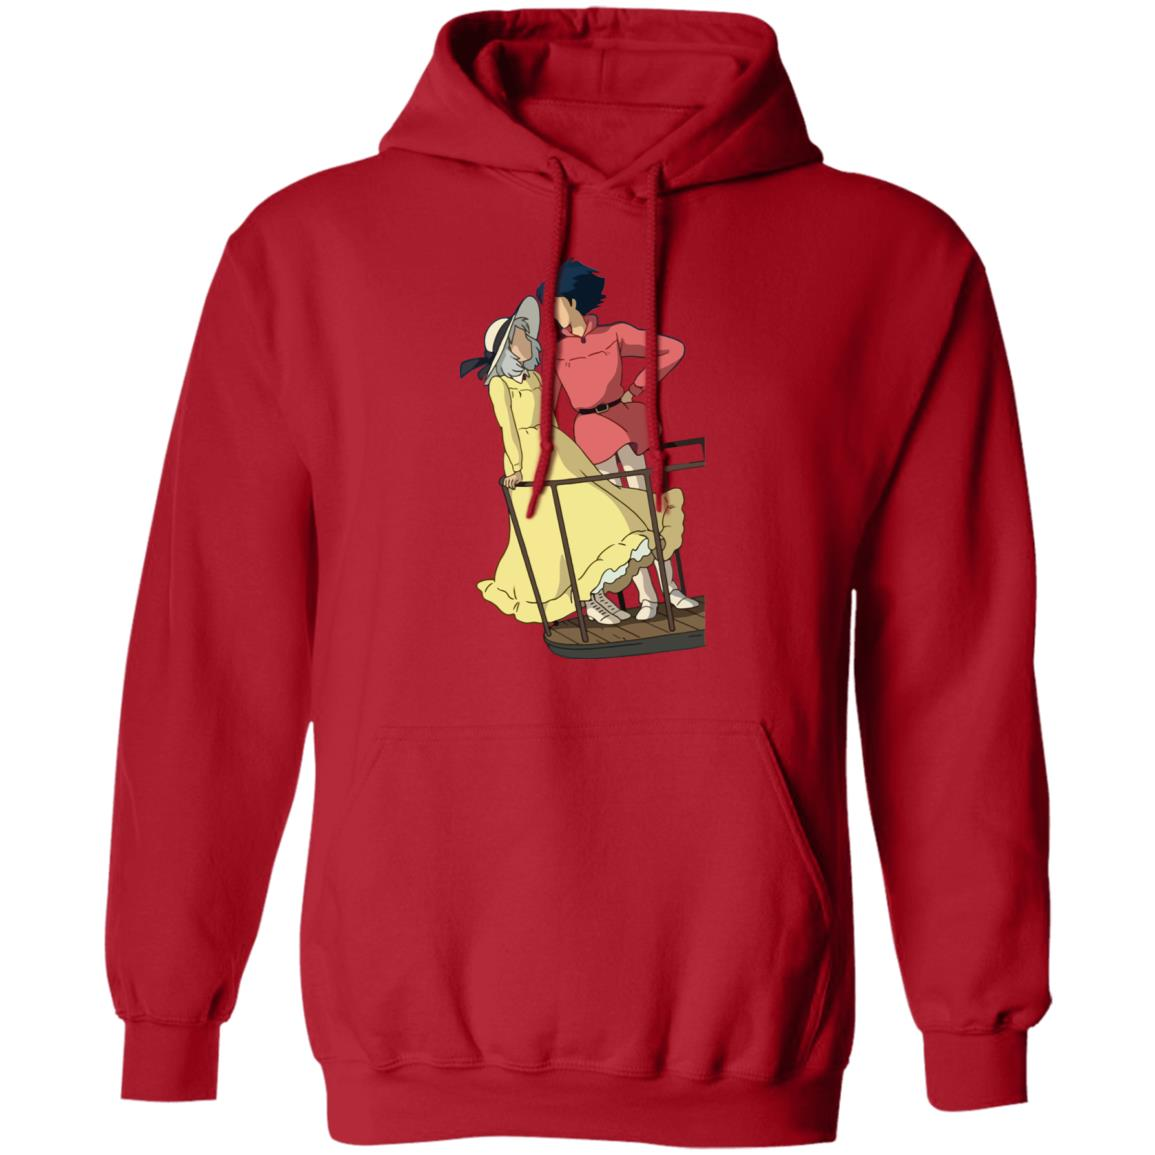 Howl's Moving Castle – Sophie and Howl Gazing at Each other Hoodie